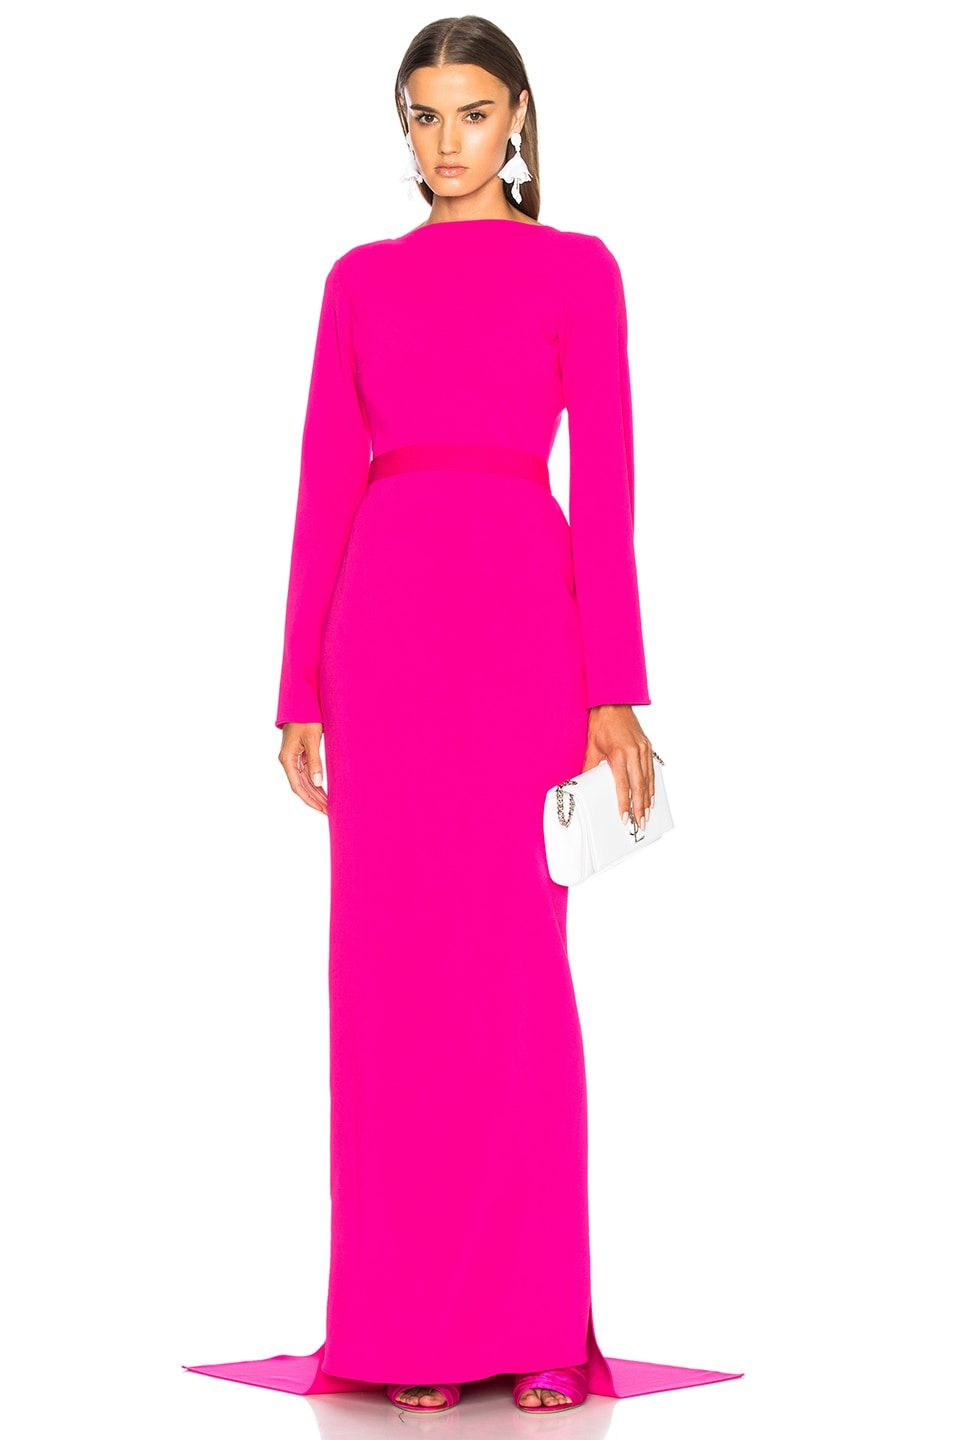 BRANDON MAXWELL WATERFALL BACK GOWN IN PINK